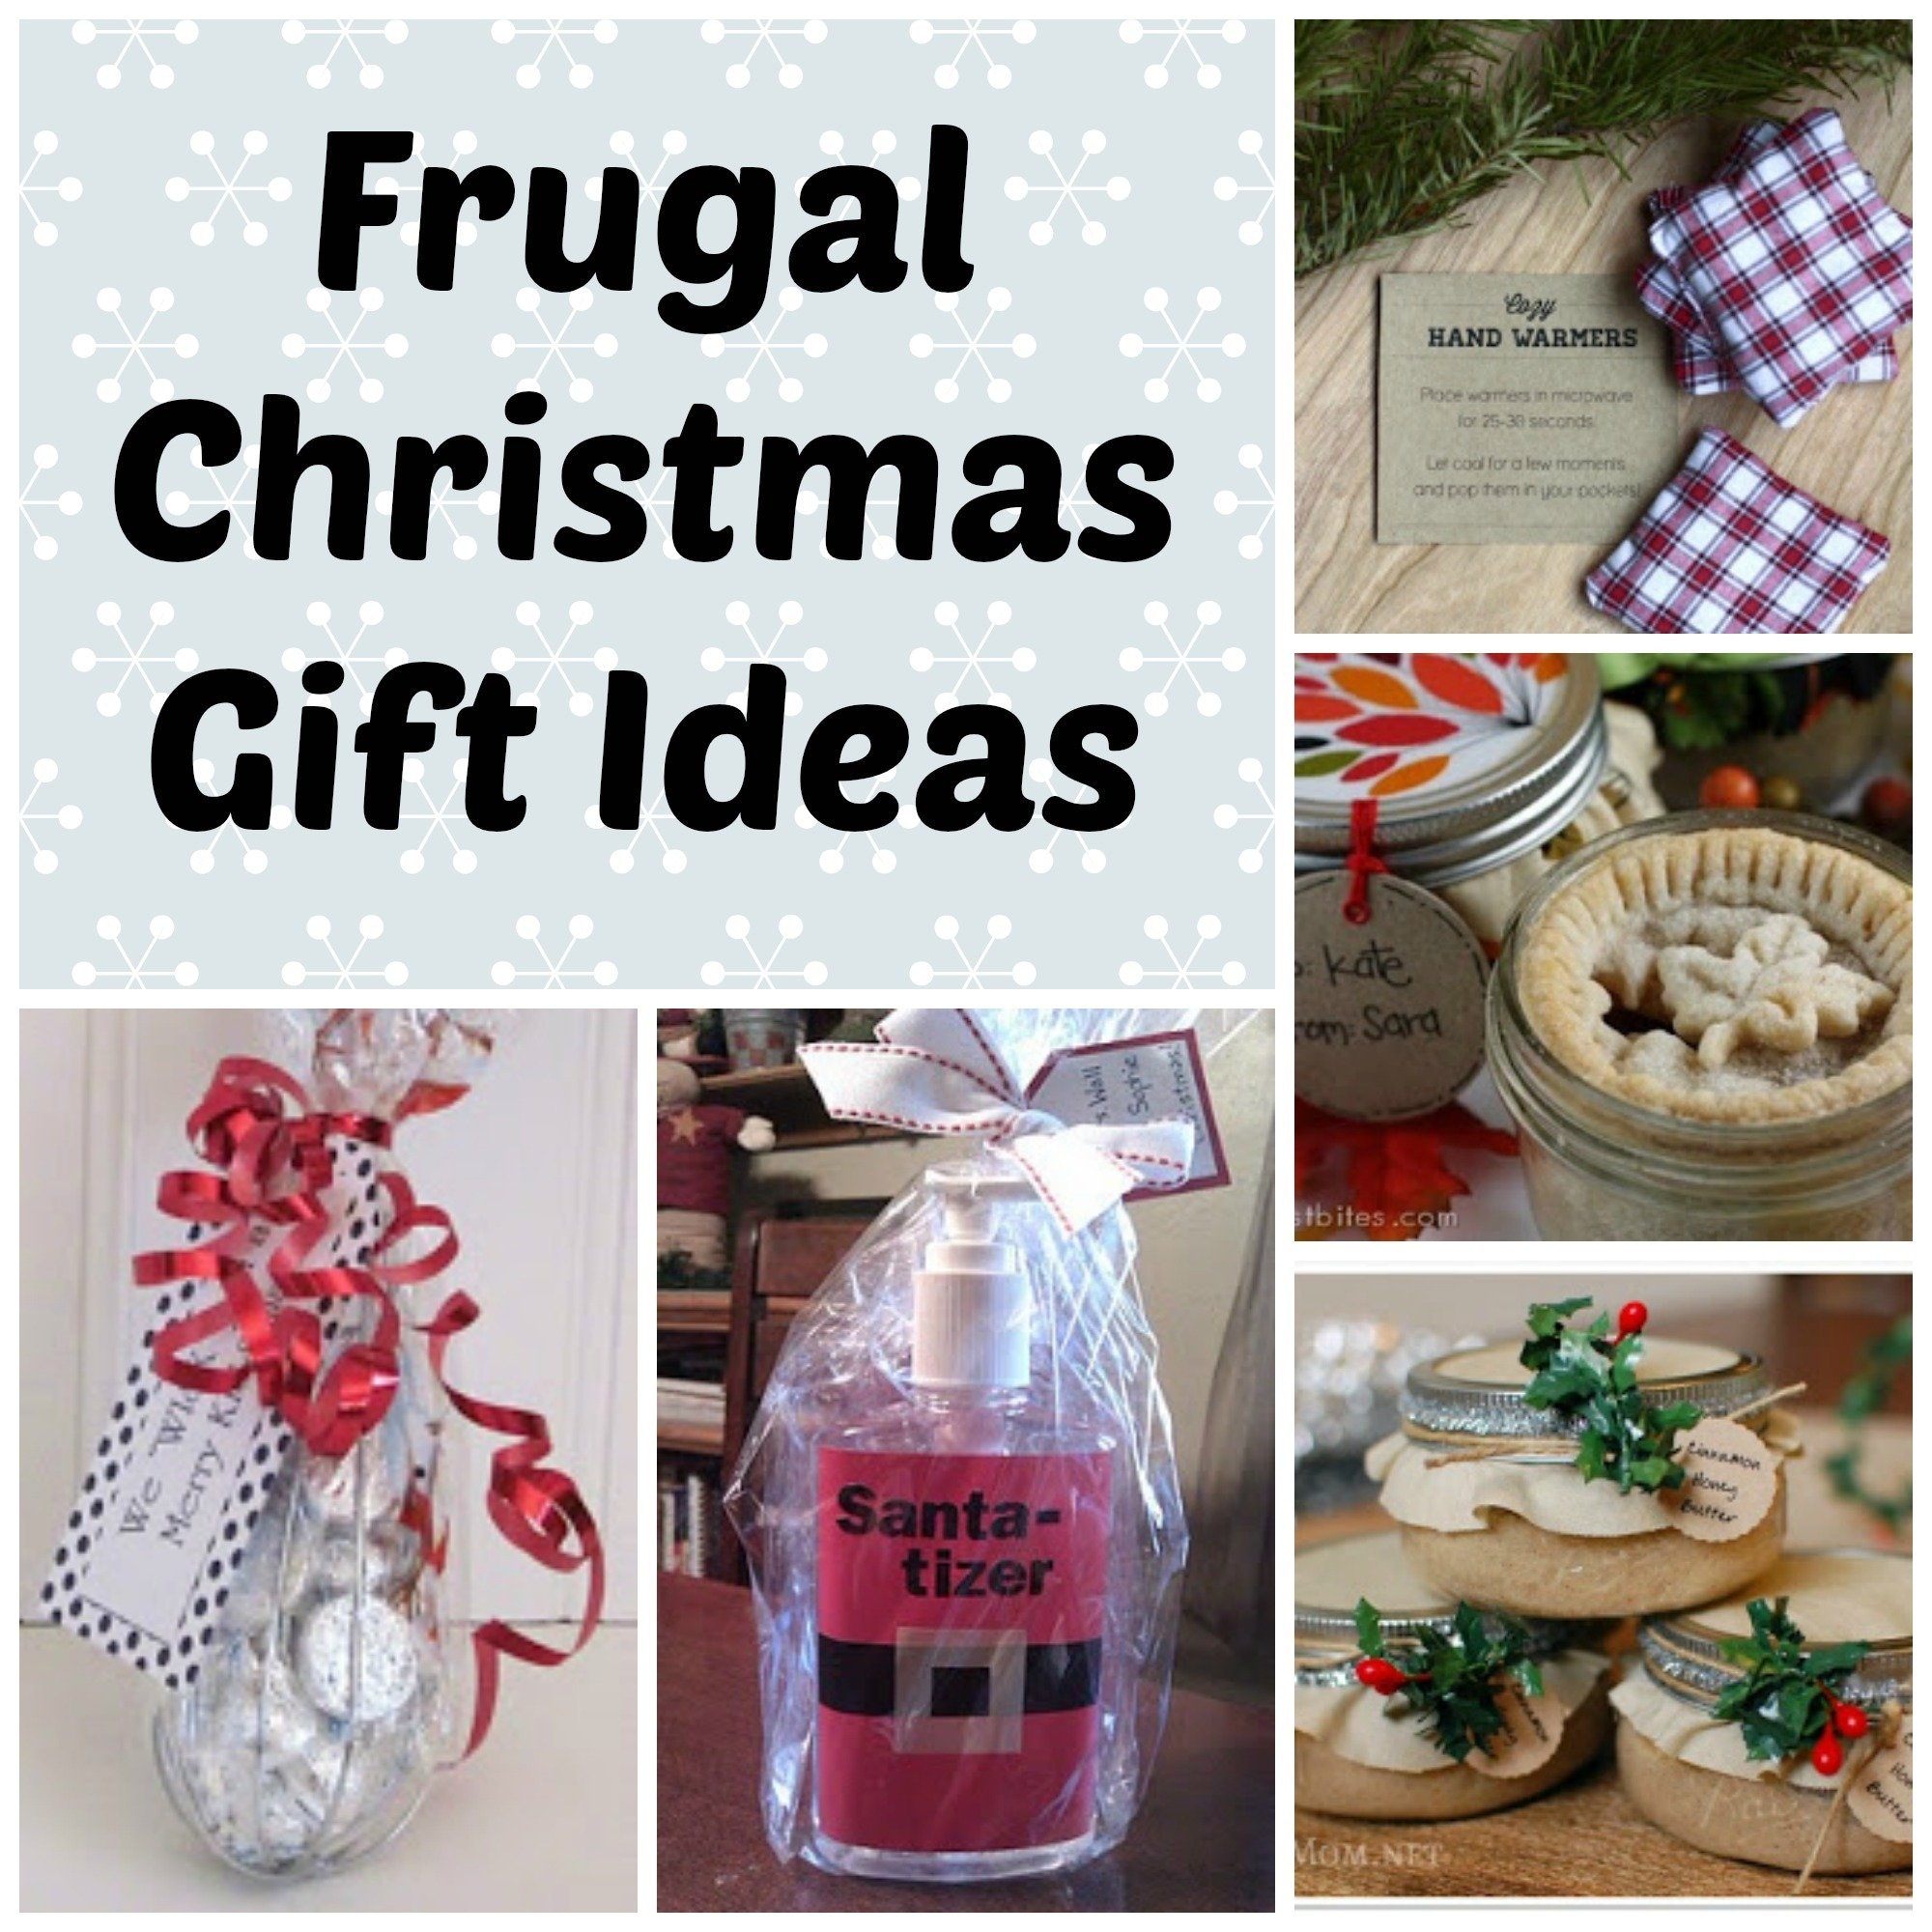 10 Amazing Christmas Present Ideas For Friends frugal christmas gift ideas part 4 frugal christmas frugal and 9 2020